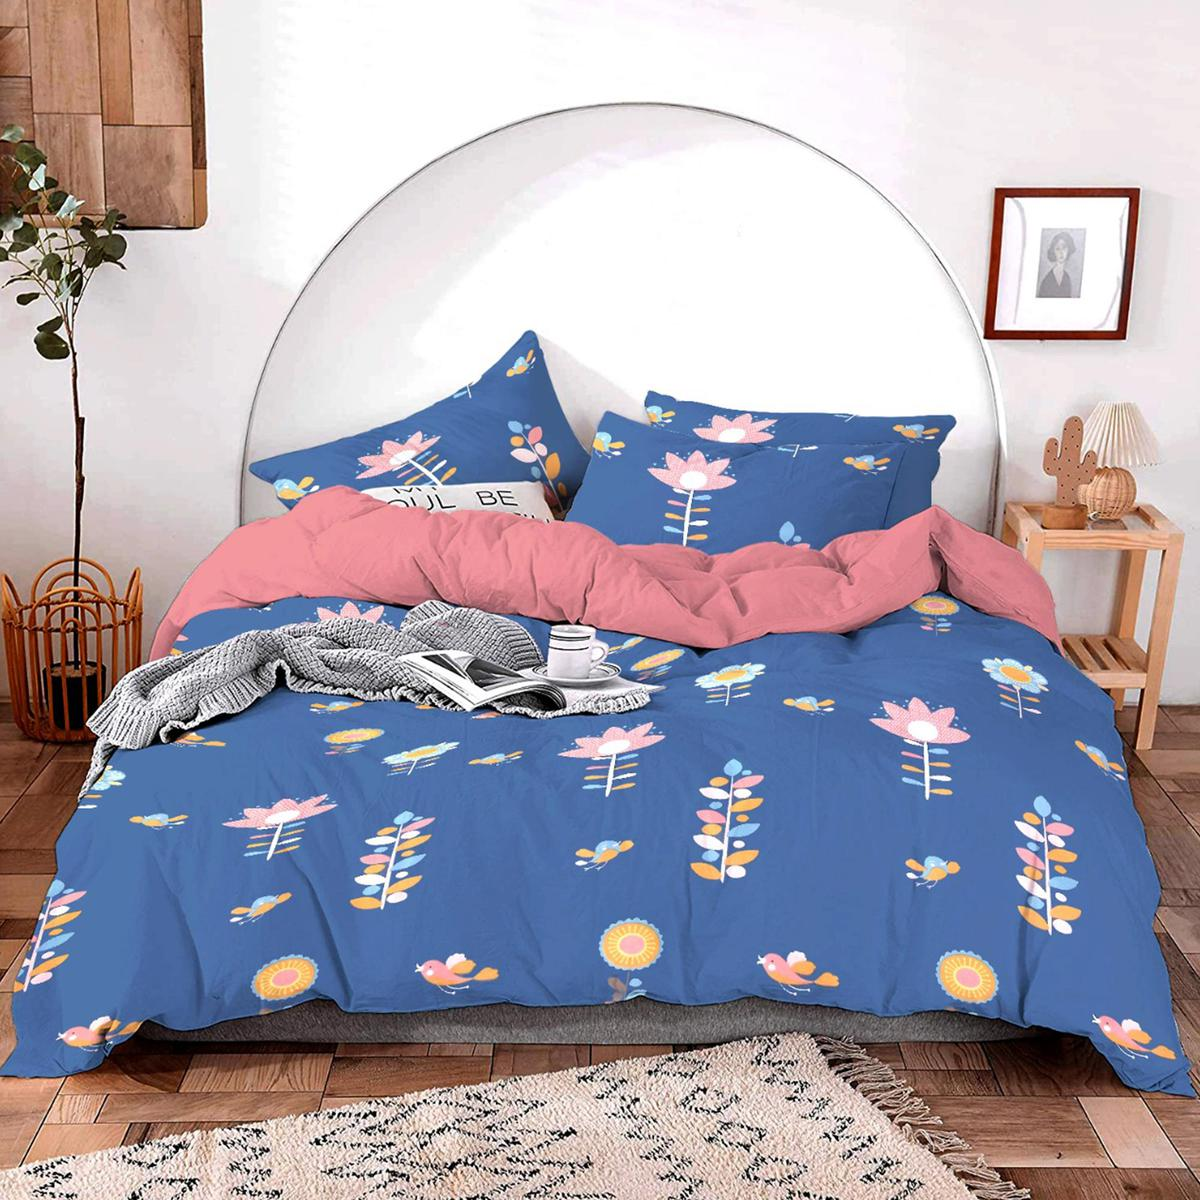 3D Design Beautifully Printed Poly Cotton Bedsheet Comes With 2 Pillow Cover Fabulous BLUE Color